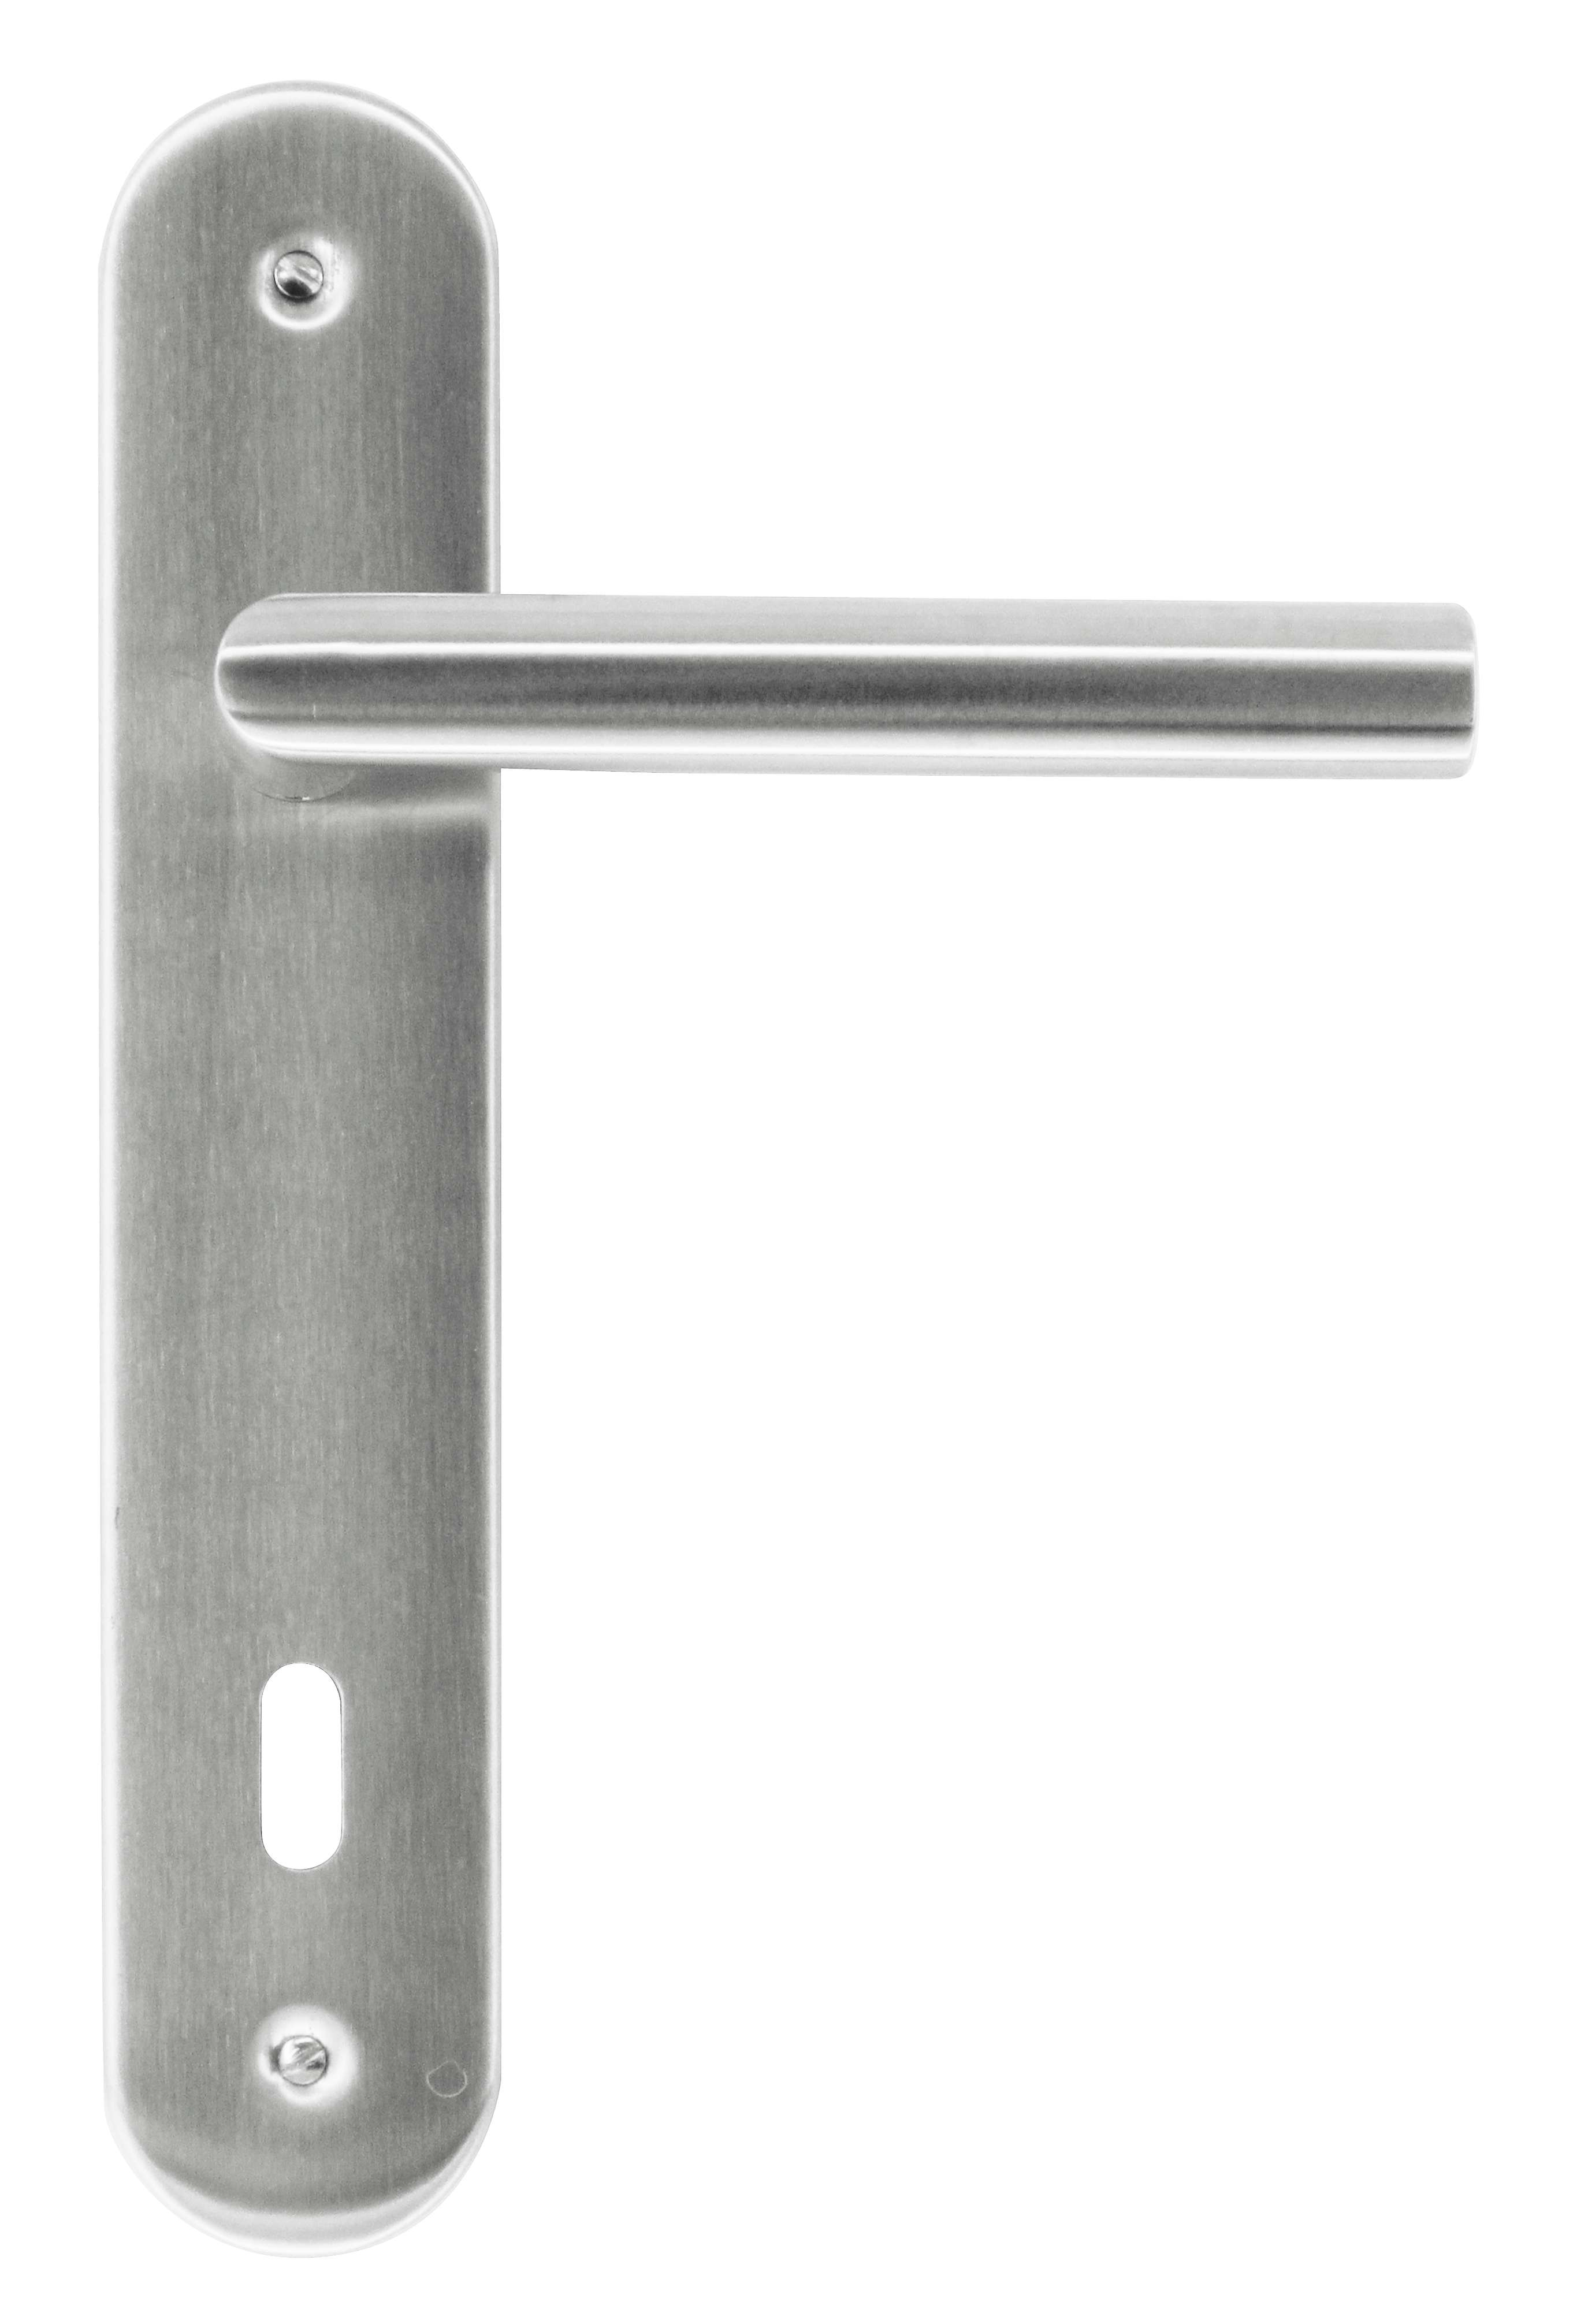 BEQUILLE pro I SHAPE 19MM INOX PLUS PLAQUE